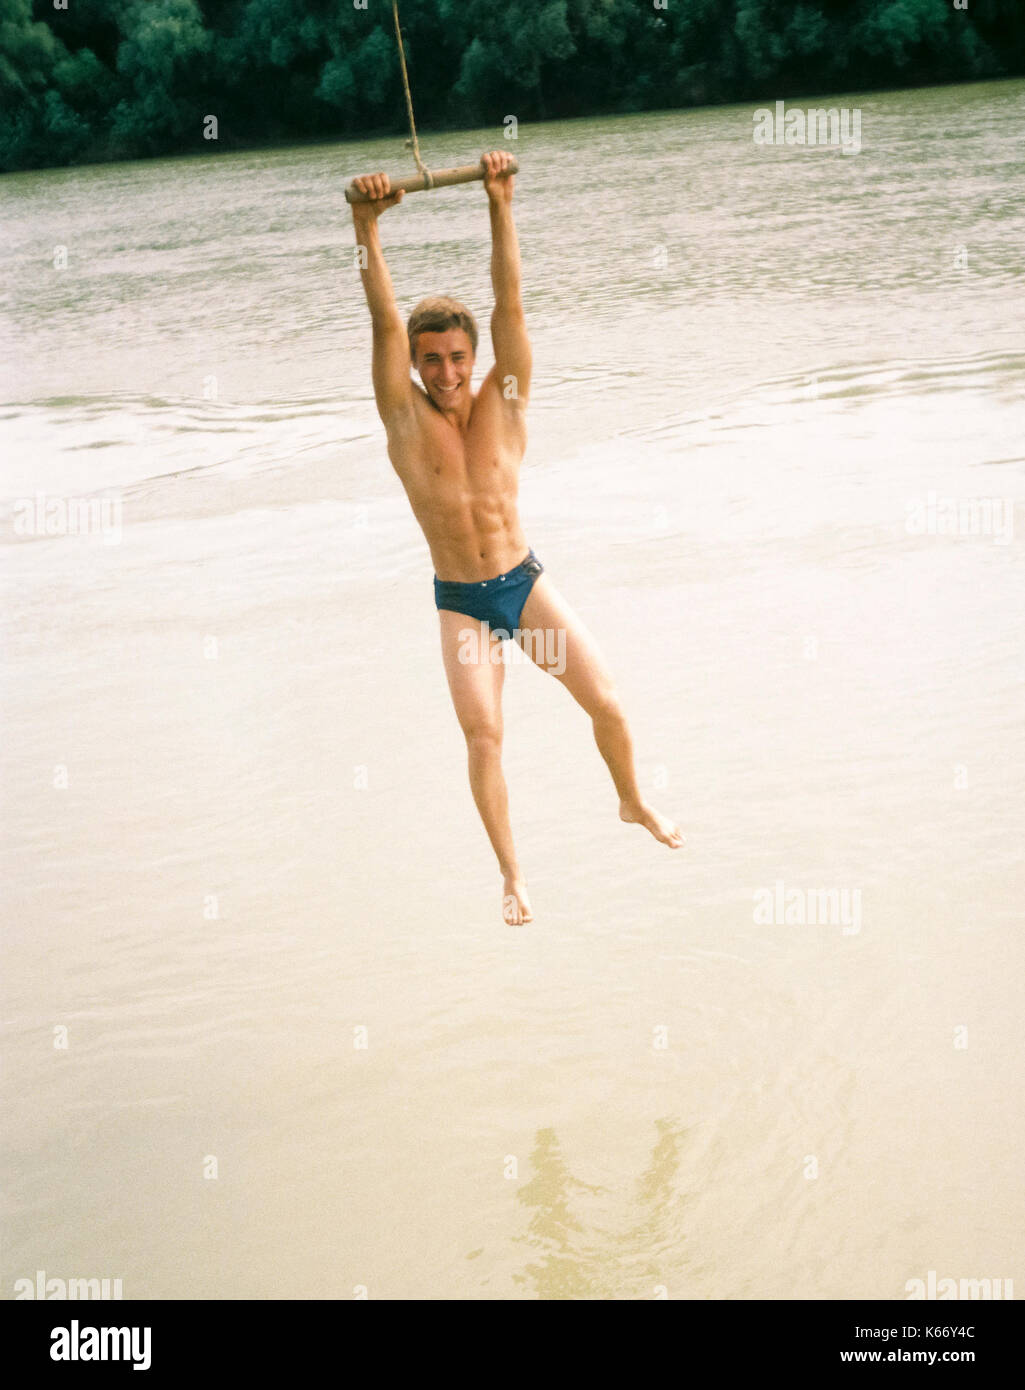 The man is swinging on the tarp. Jumping from the stream on the river bank Stock Photo